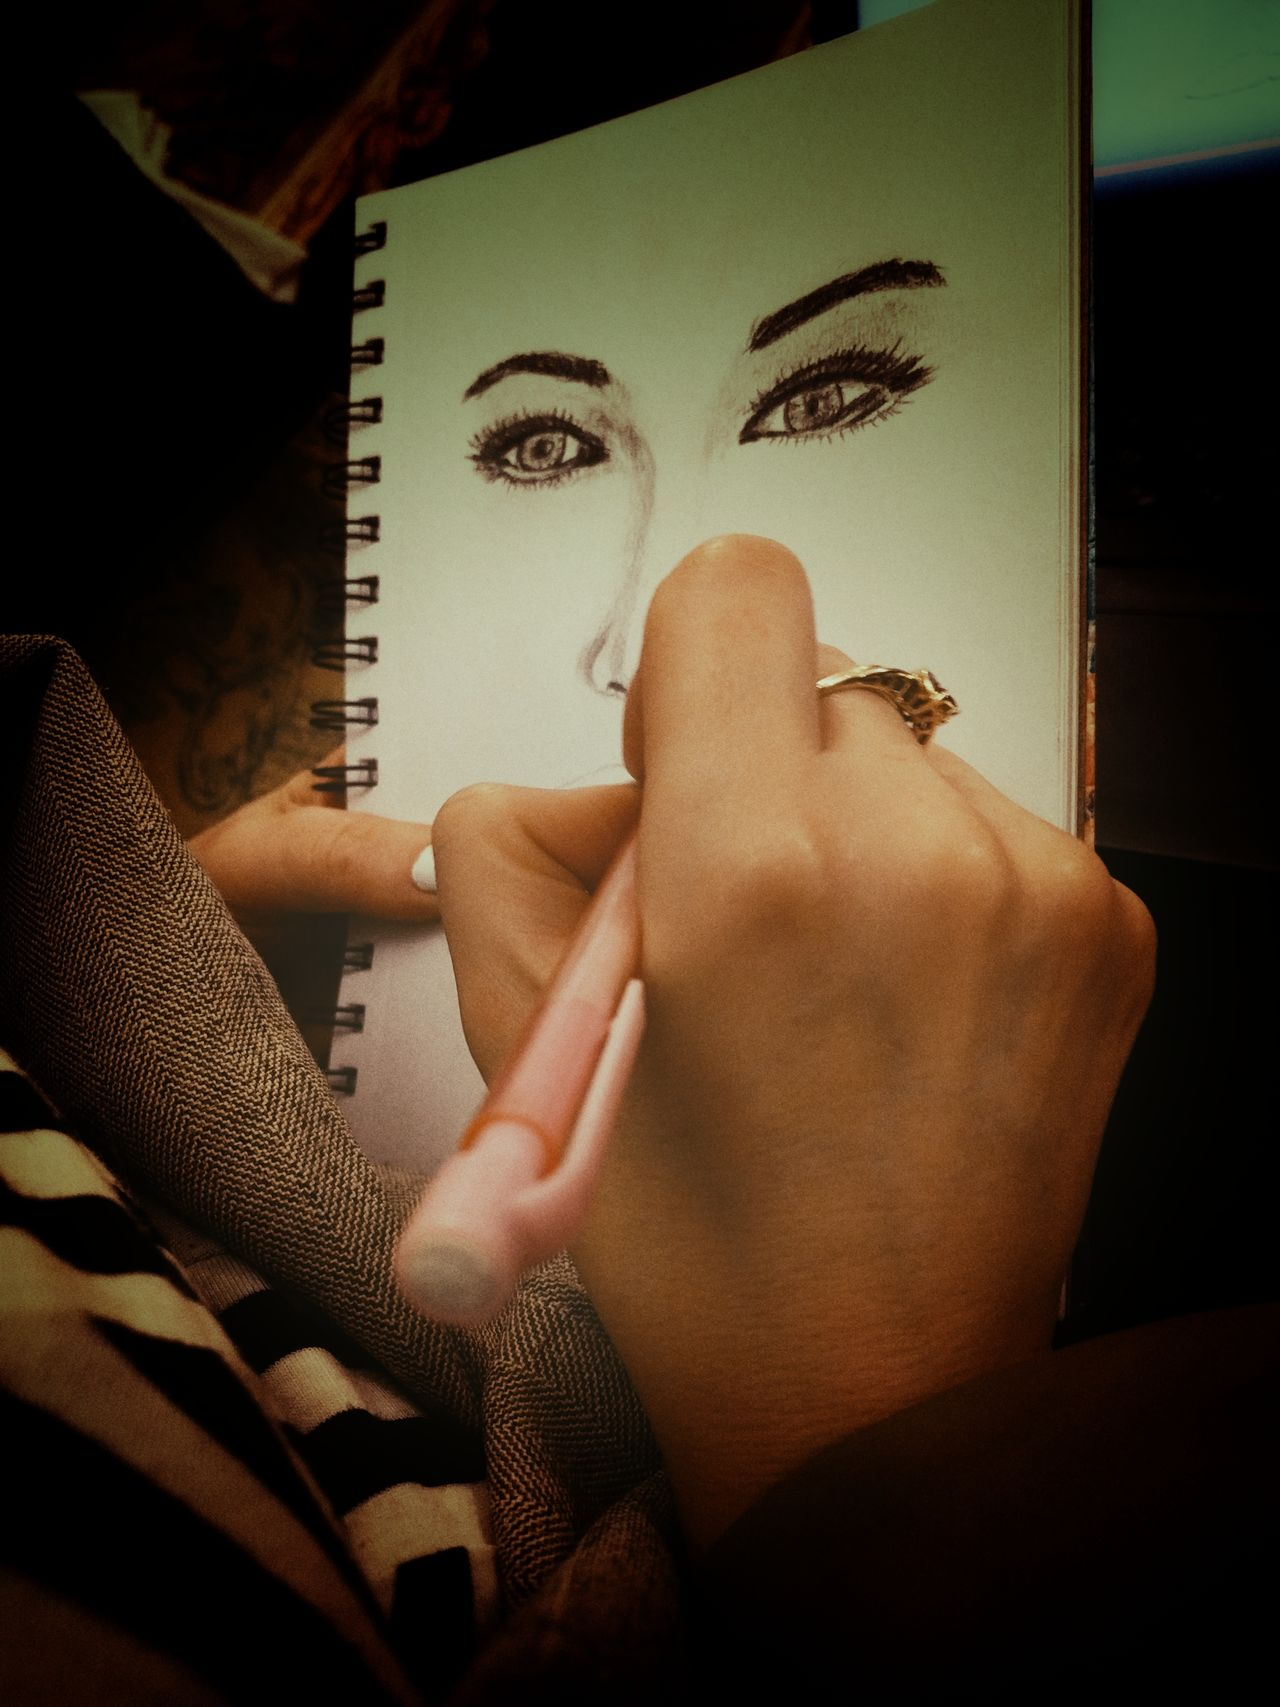 Human Body Part Human Hand One Person Indoors  Real People Close-up Drawing Woman Portrait Drawing ✏ Drawing - Activity